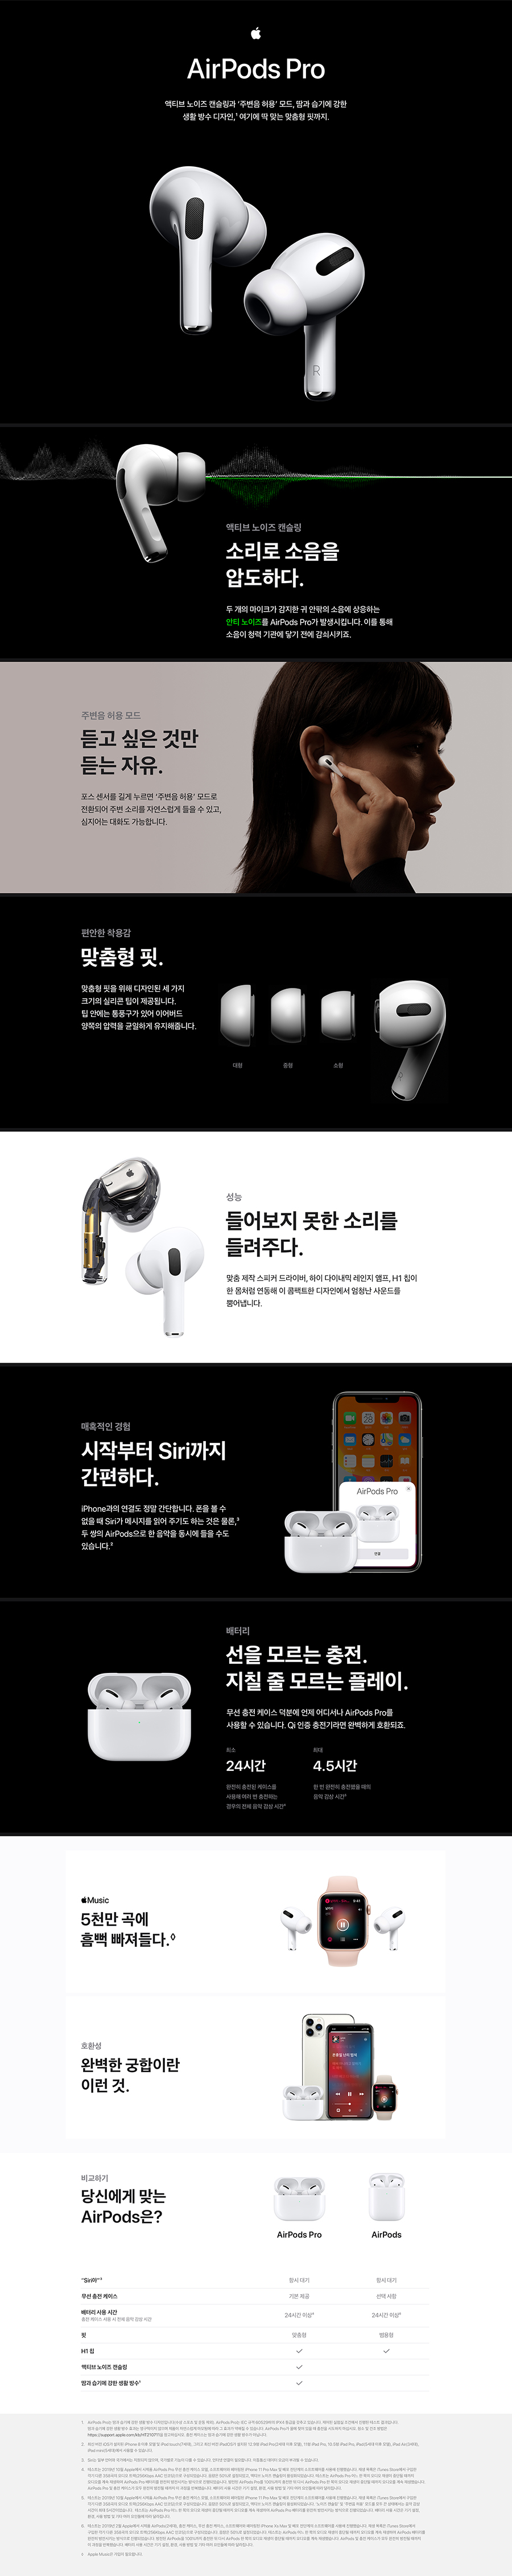 20191104_airpodspro_productpage_900_no_bt.jpg